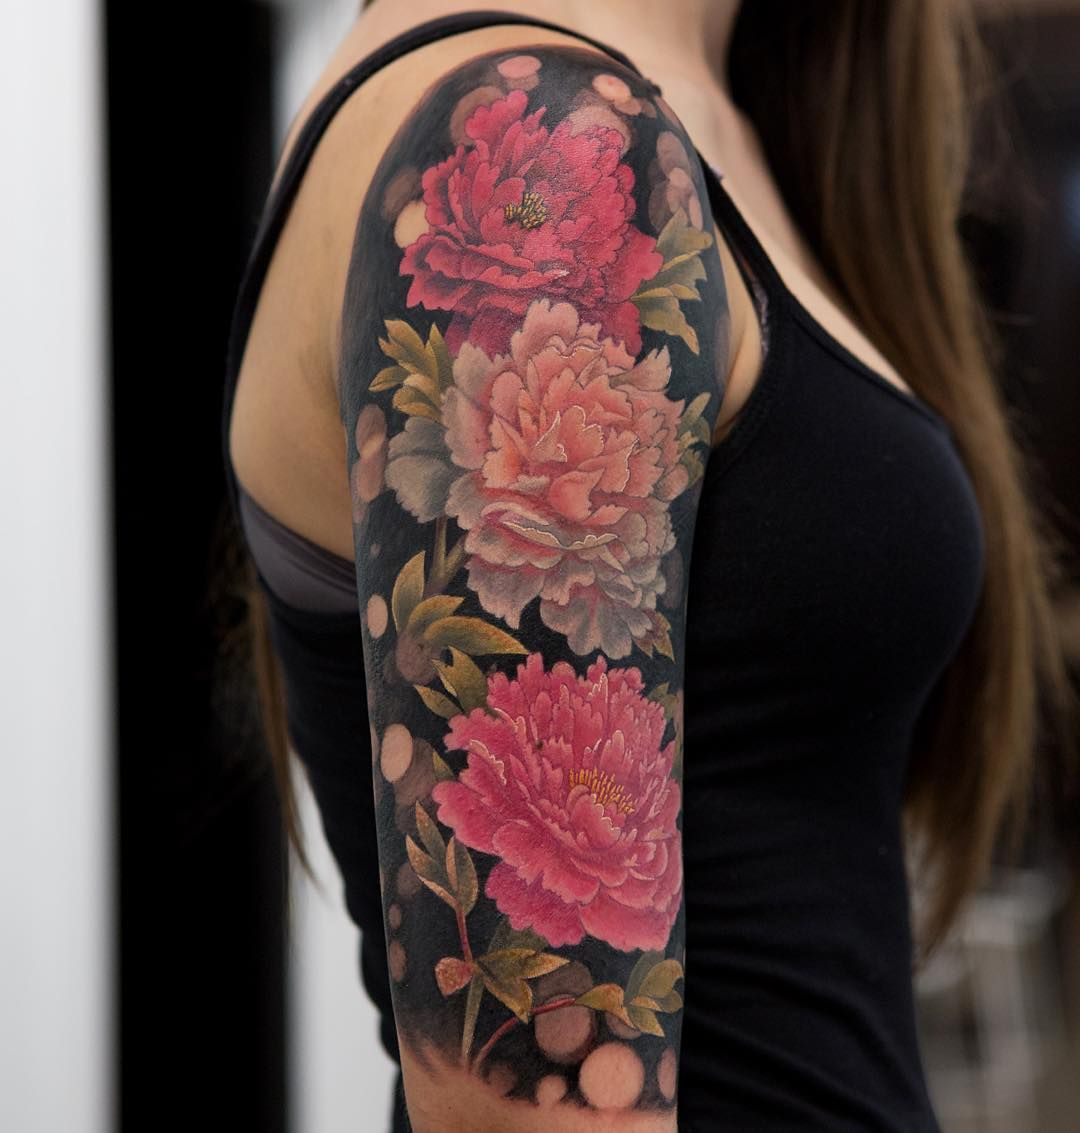 Tattoo: Peony Tattoo By Mikhail Anderson - Gardening Go